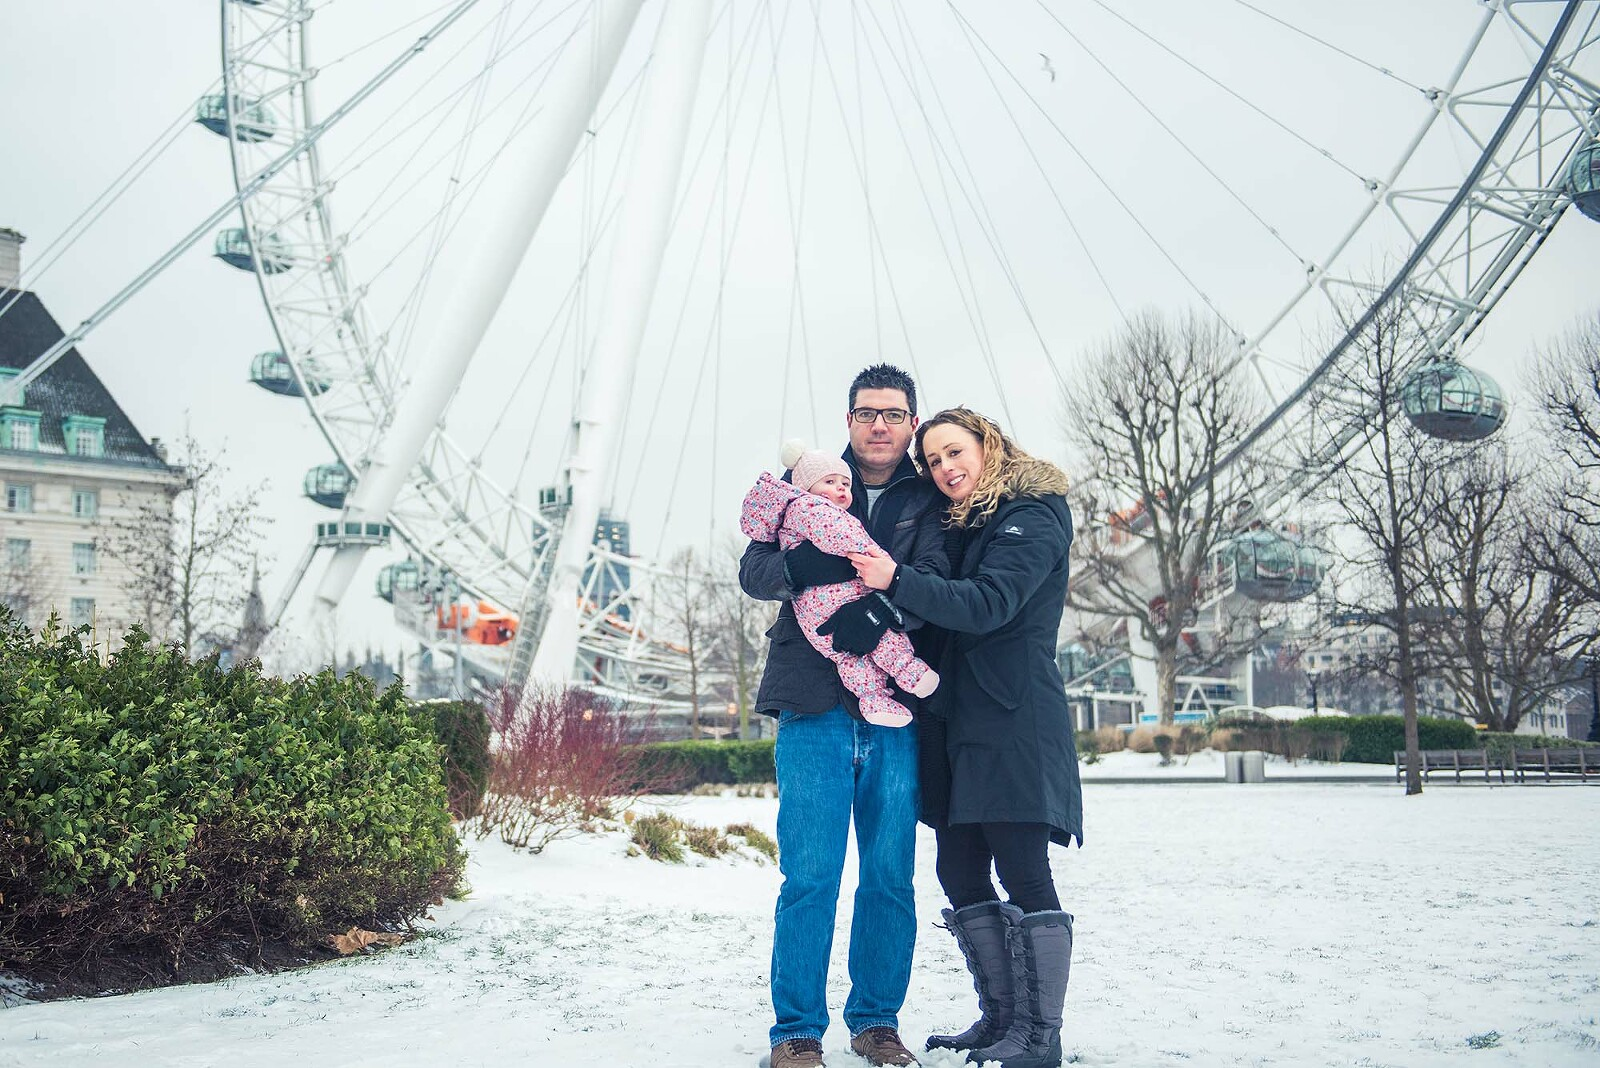 Family Portraits in the snow at Southbank